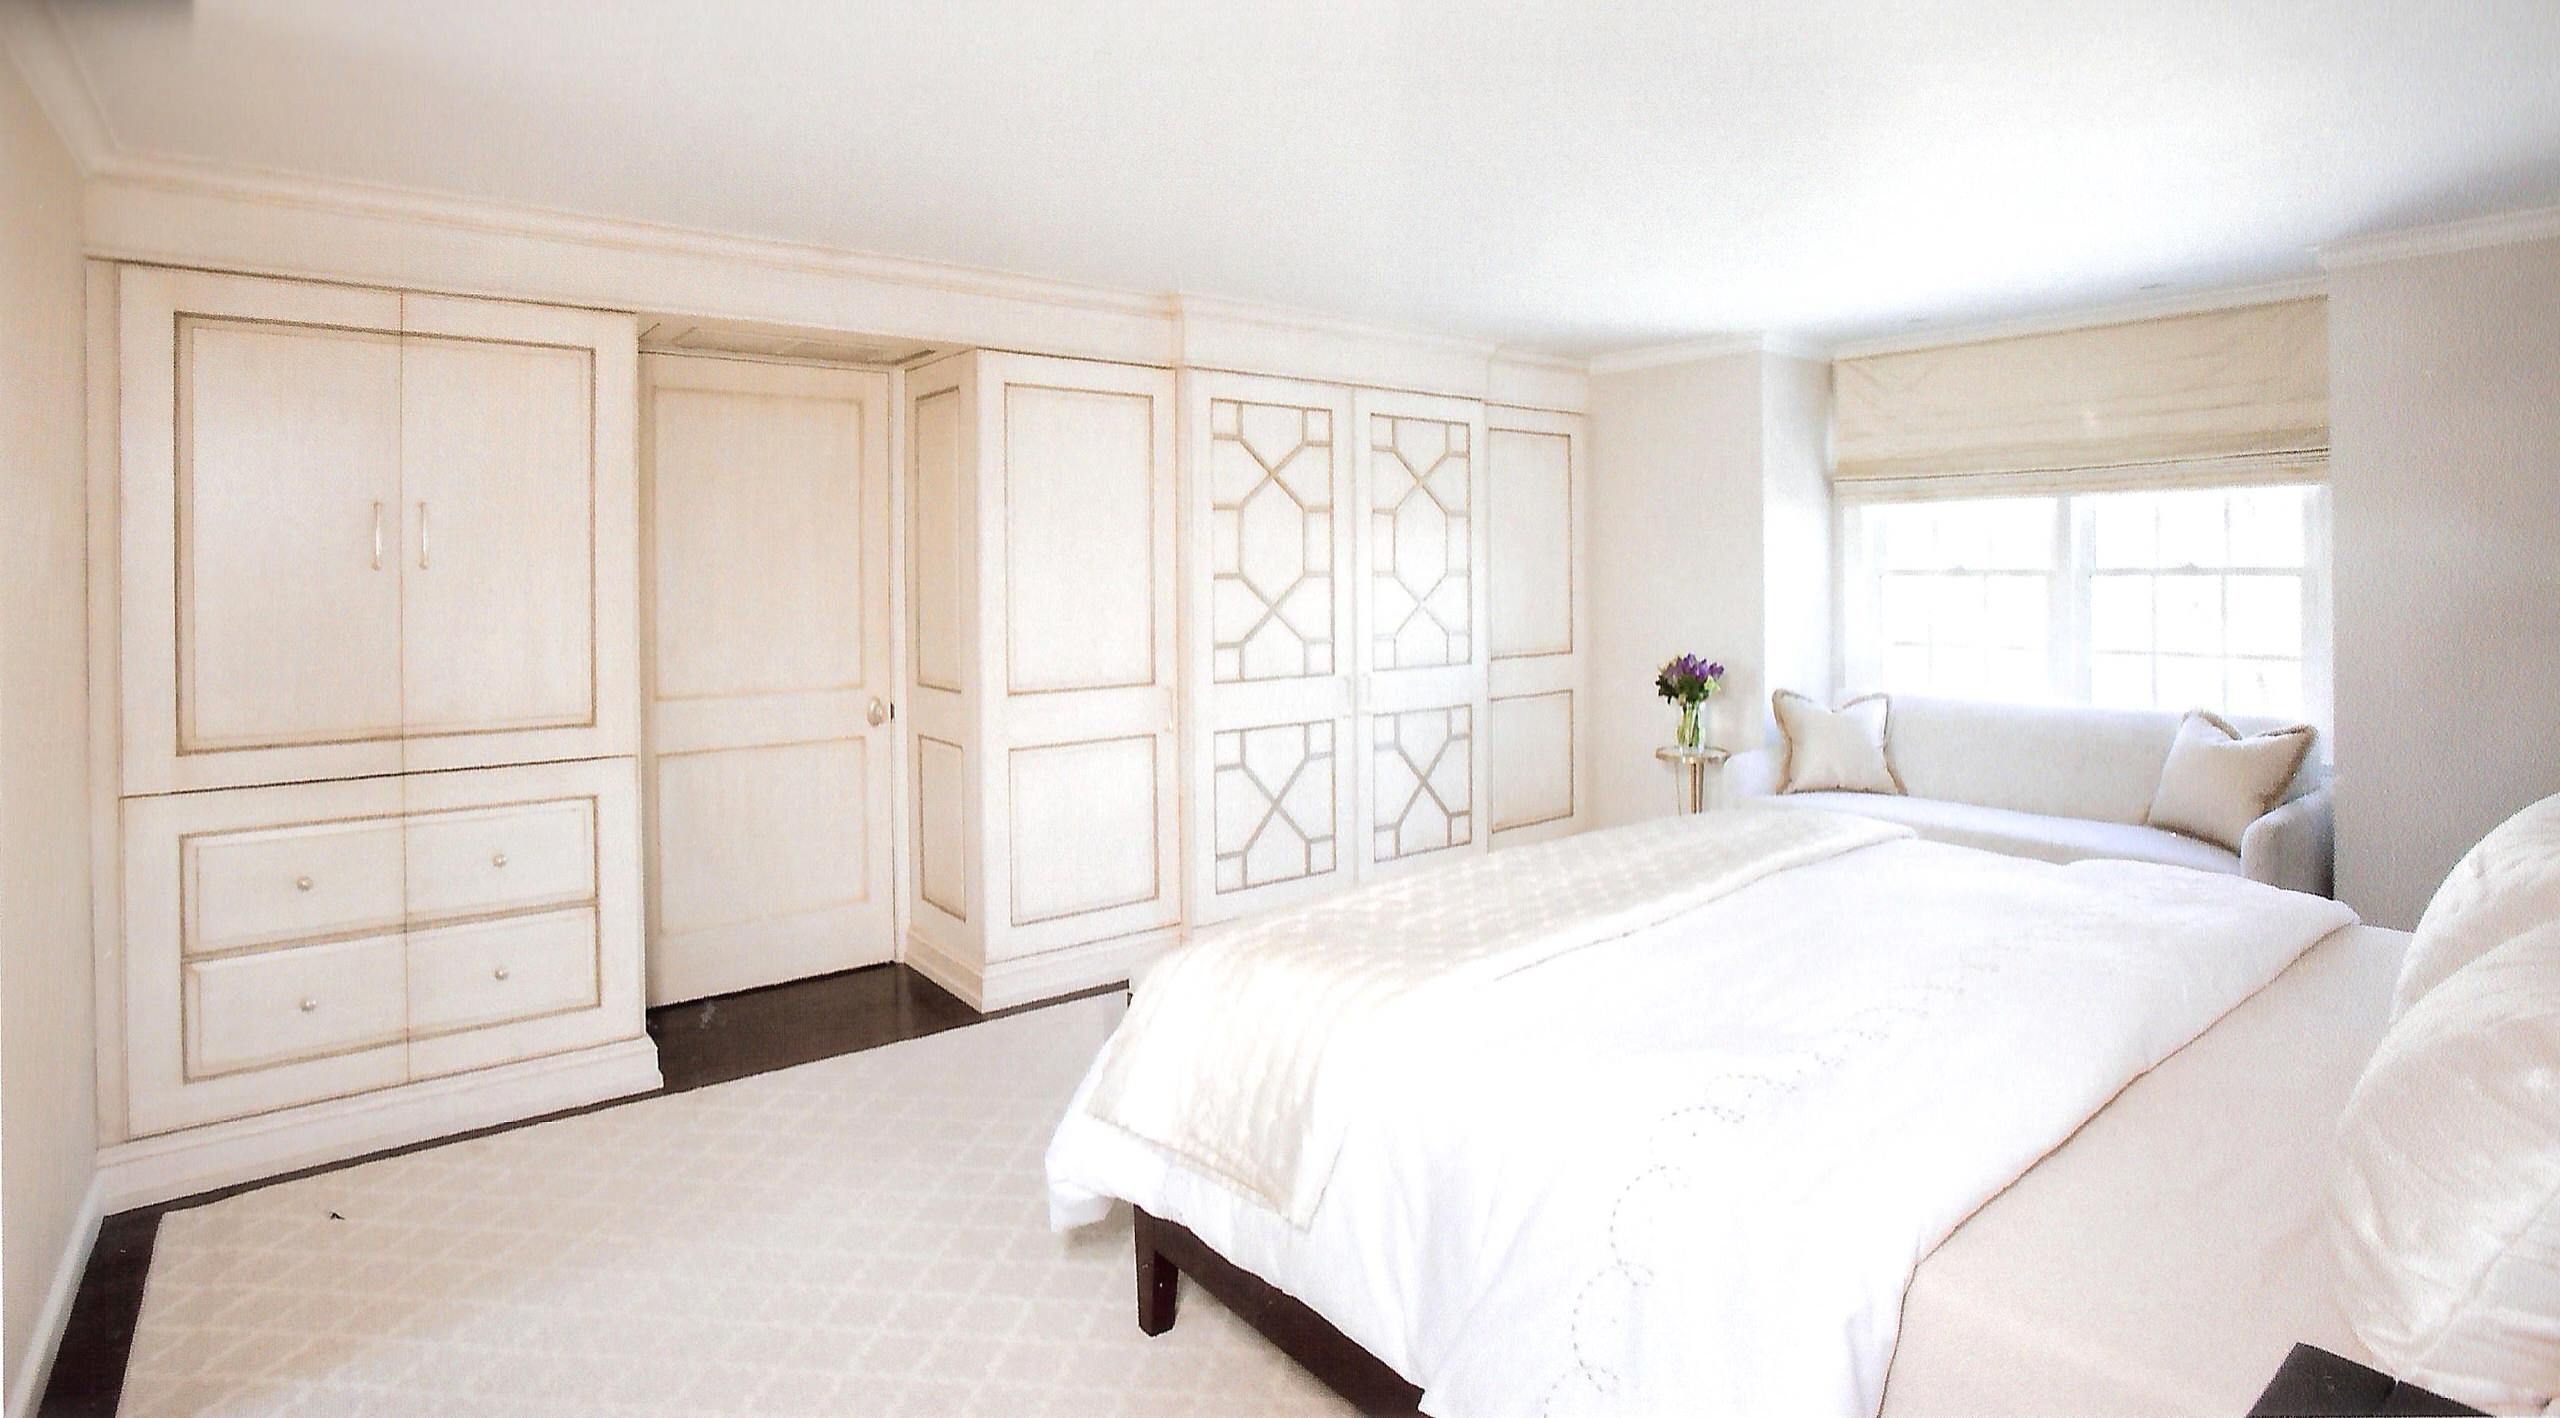 Natick Master Suite and Wine Cellar Remodel